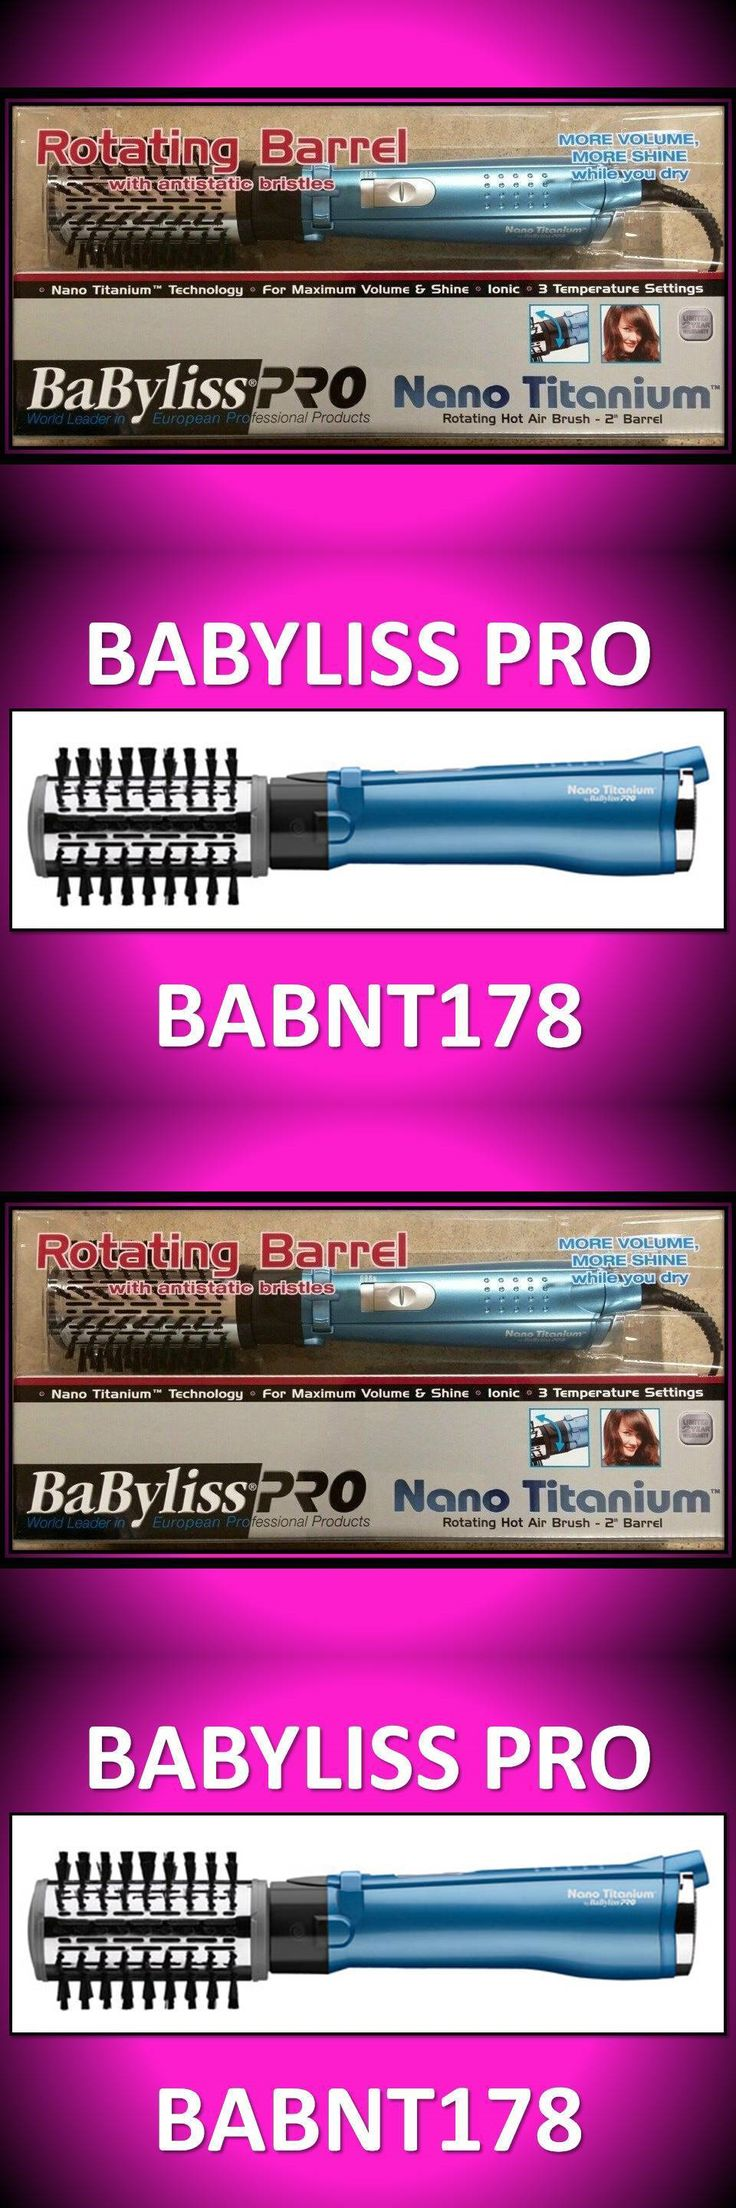 Straightening and Curling Irons: Babyliss Pro 2 Nano Titanium Rotating Hot Air Brush Amplifier Dryer # Babnt178 -> BUY IT NOW ONLY: $68.02 on eBay!